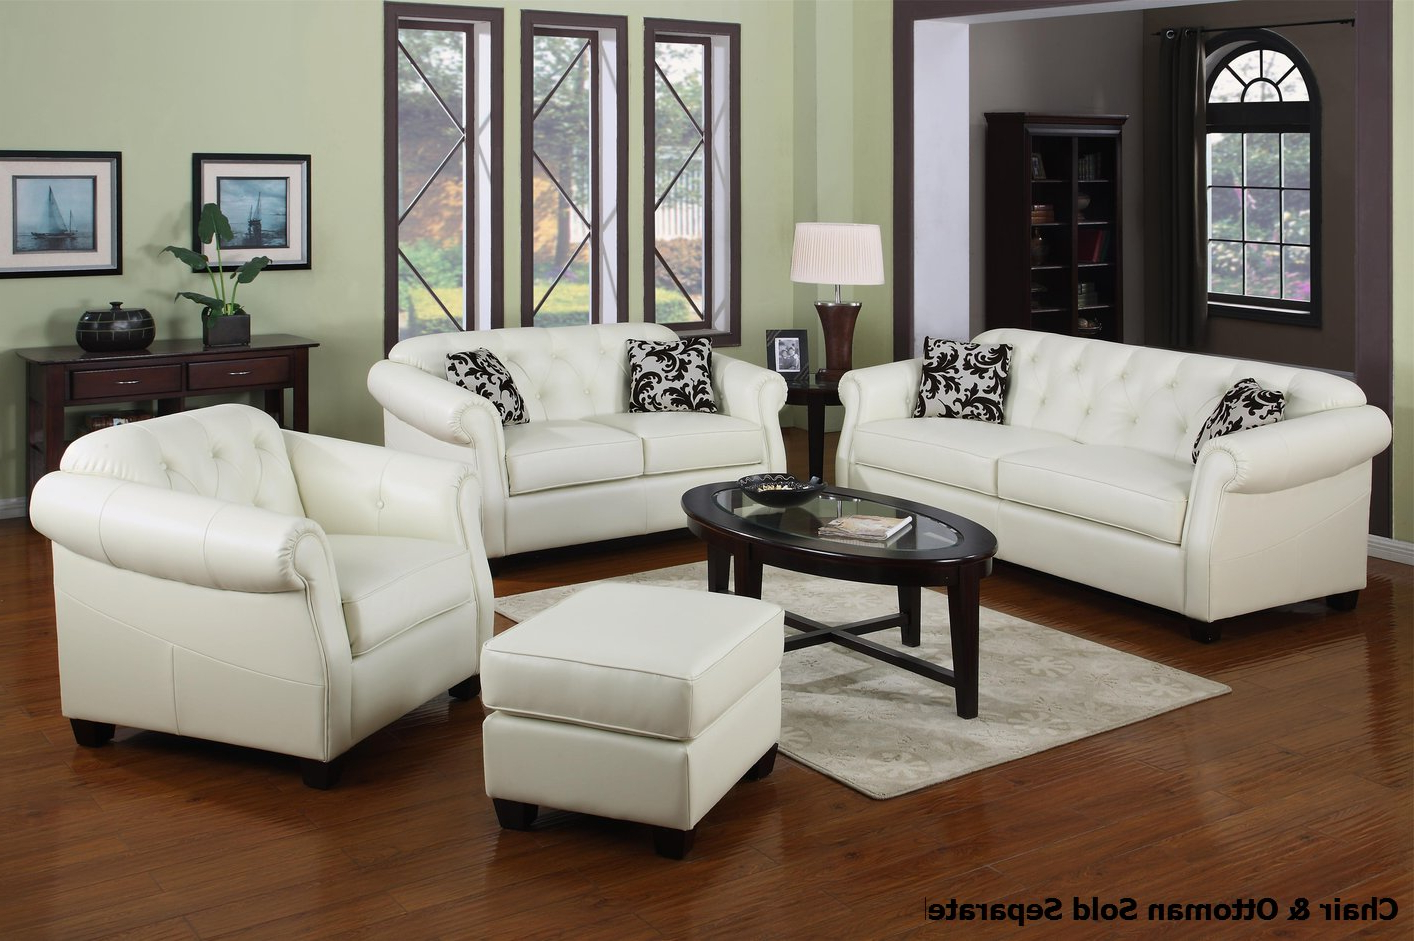 Fashionable For And Loveseat Covers Couches Combo Chair Set Double Small Costco Within Sofa Loveseat And Chair Set (Gallery 19 of 20)